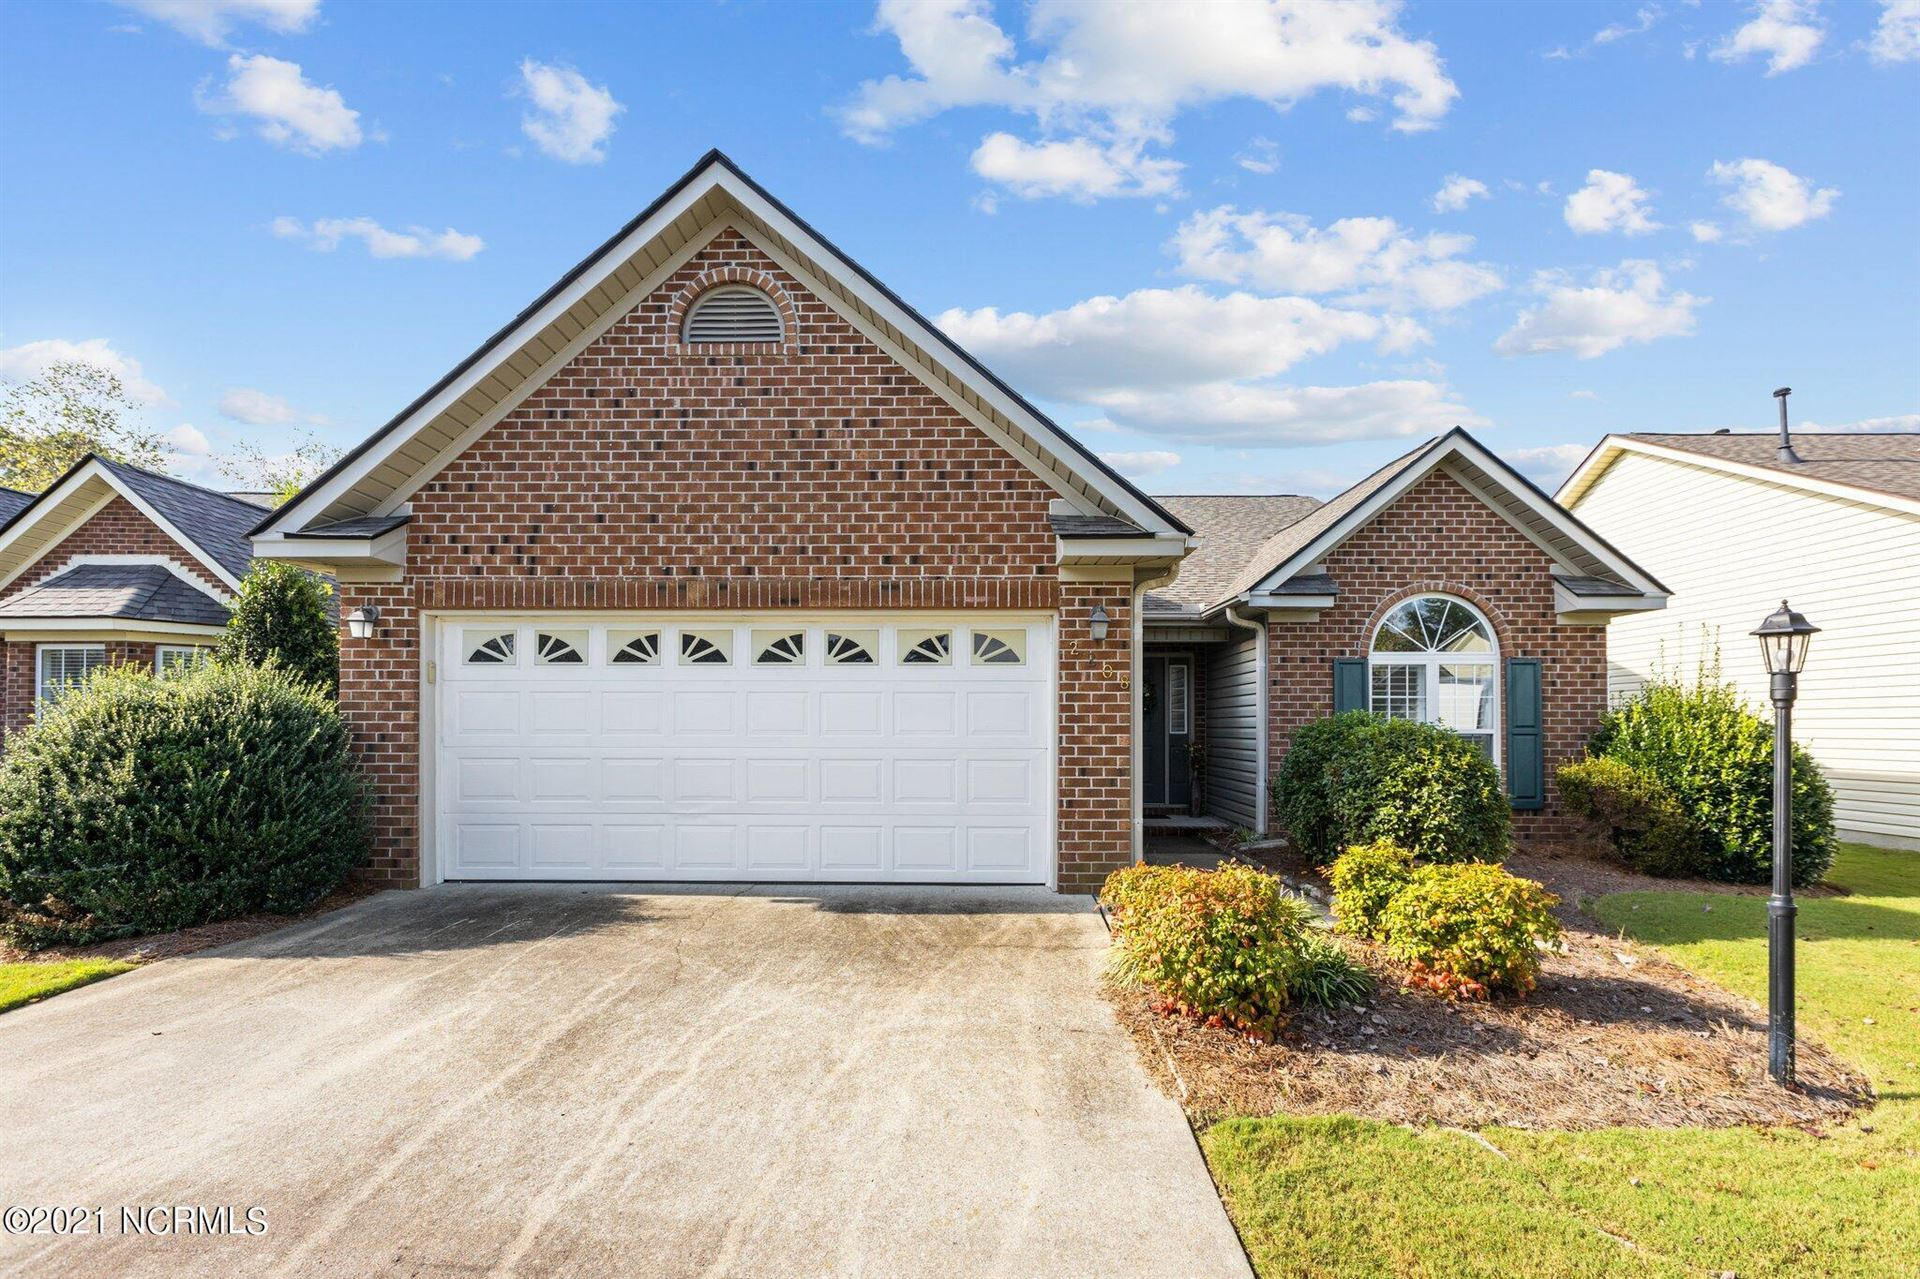 Photo of 2208 Yorkshire Drive, Greenville, NC 27858 (MLS # 100291763)